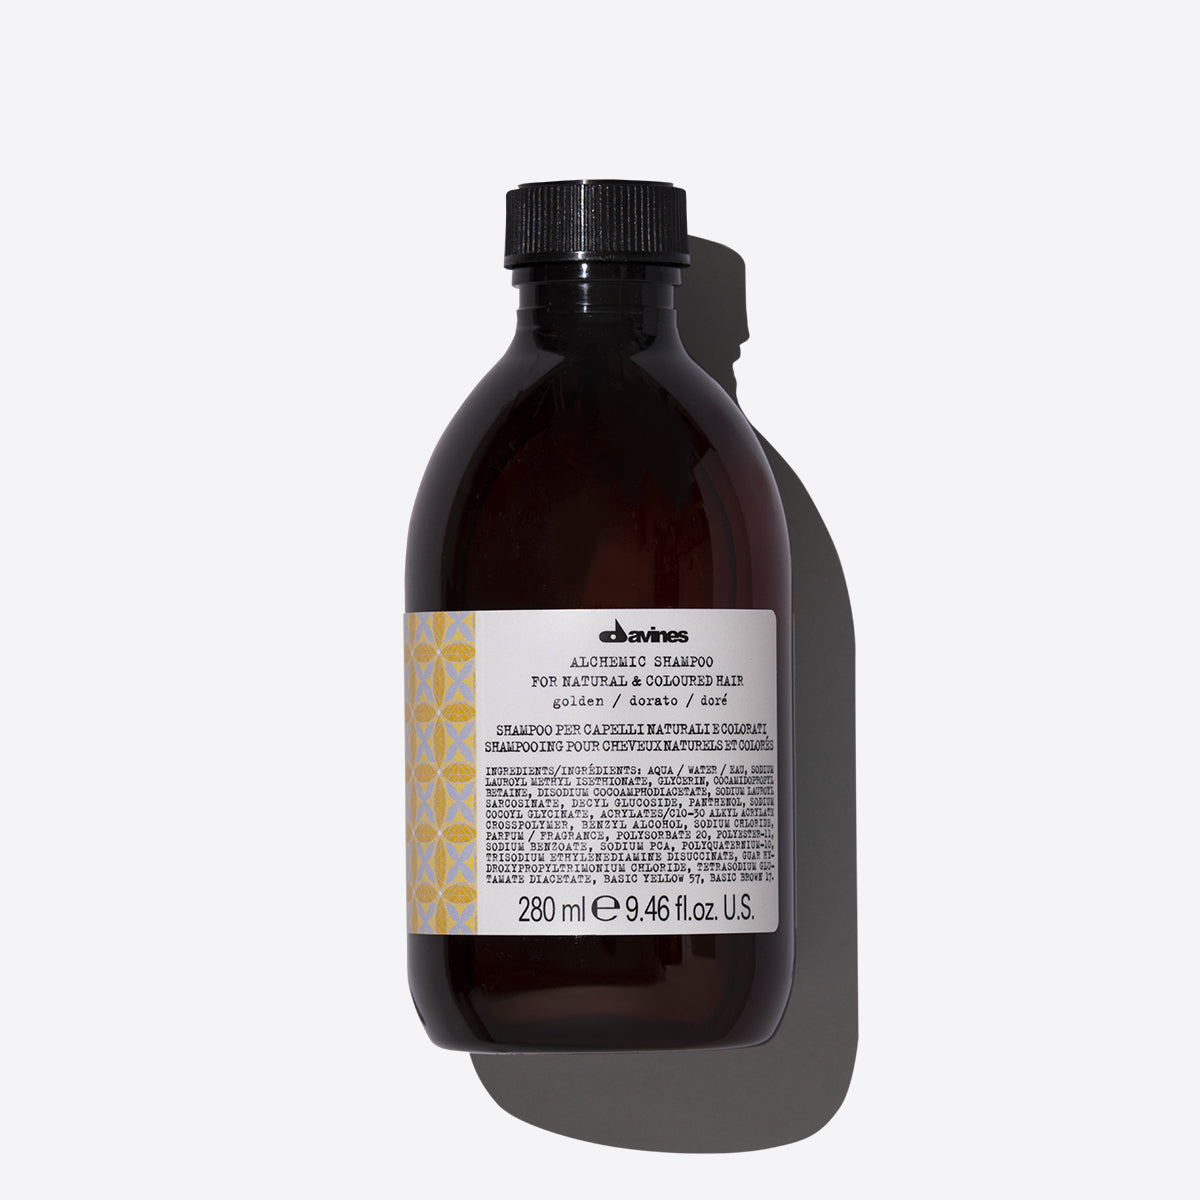 ALCHEMIC Shampoo Golden 1  Davines